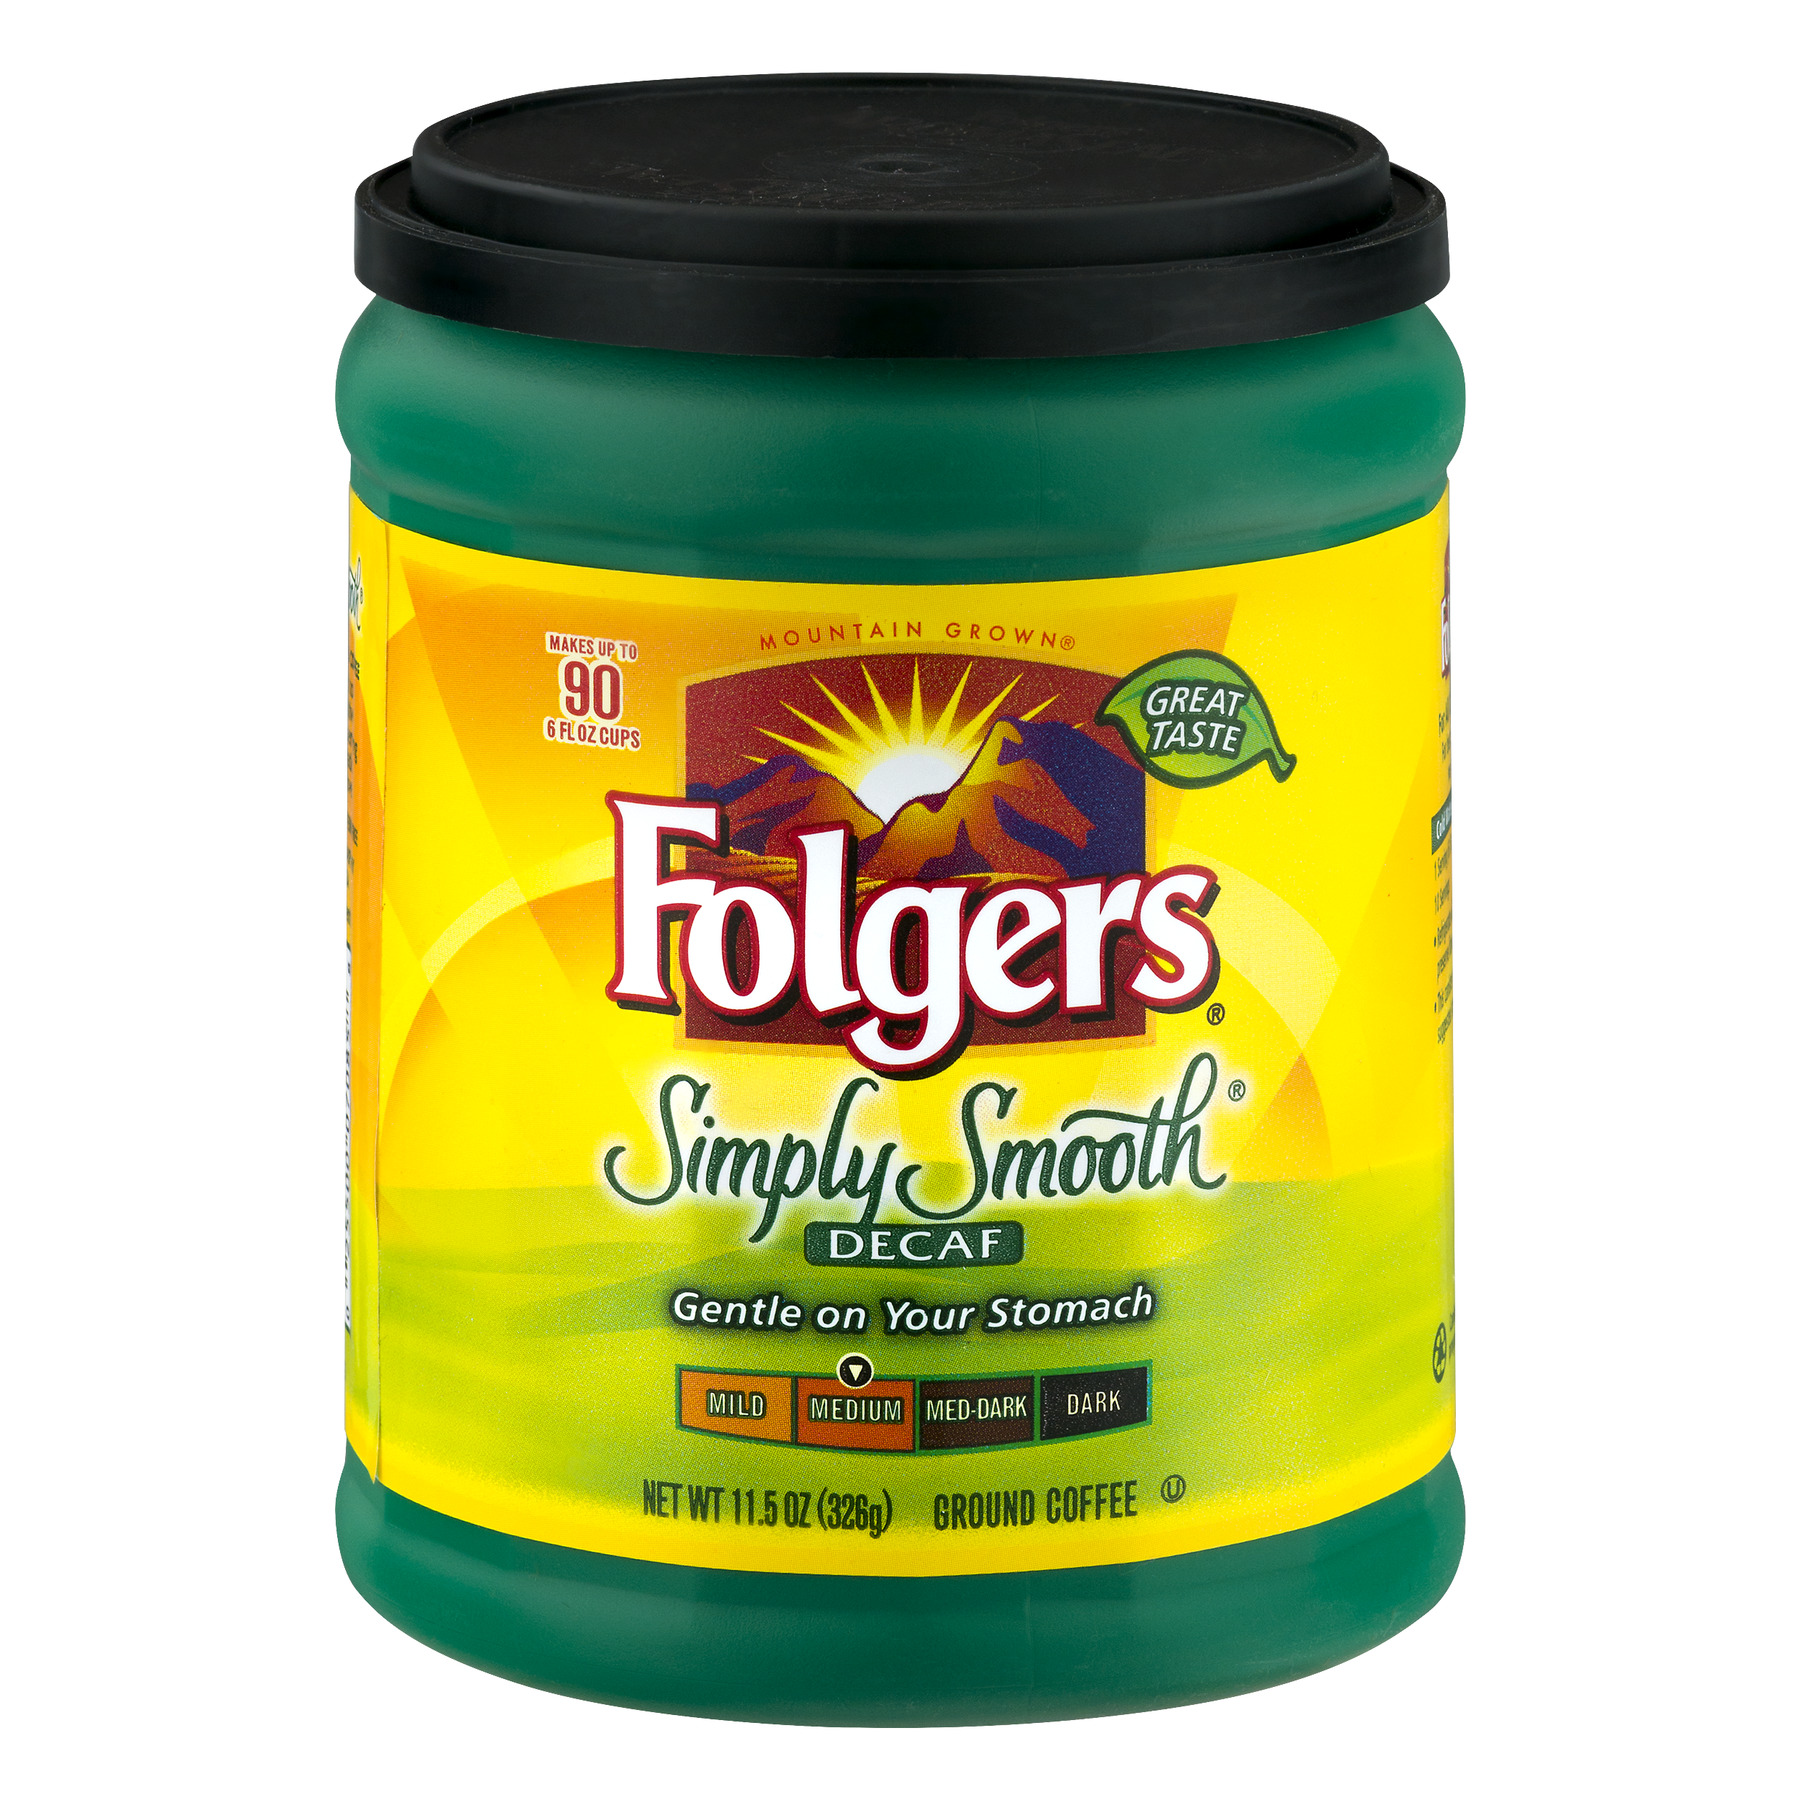 JM Smucker Folgers Simply Smooth Coffee, 11.5 oz